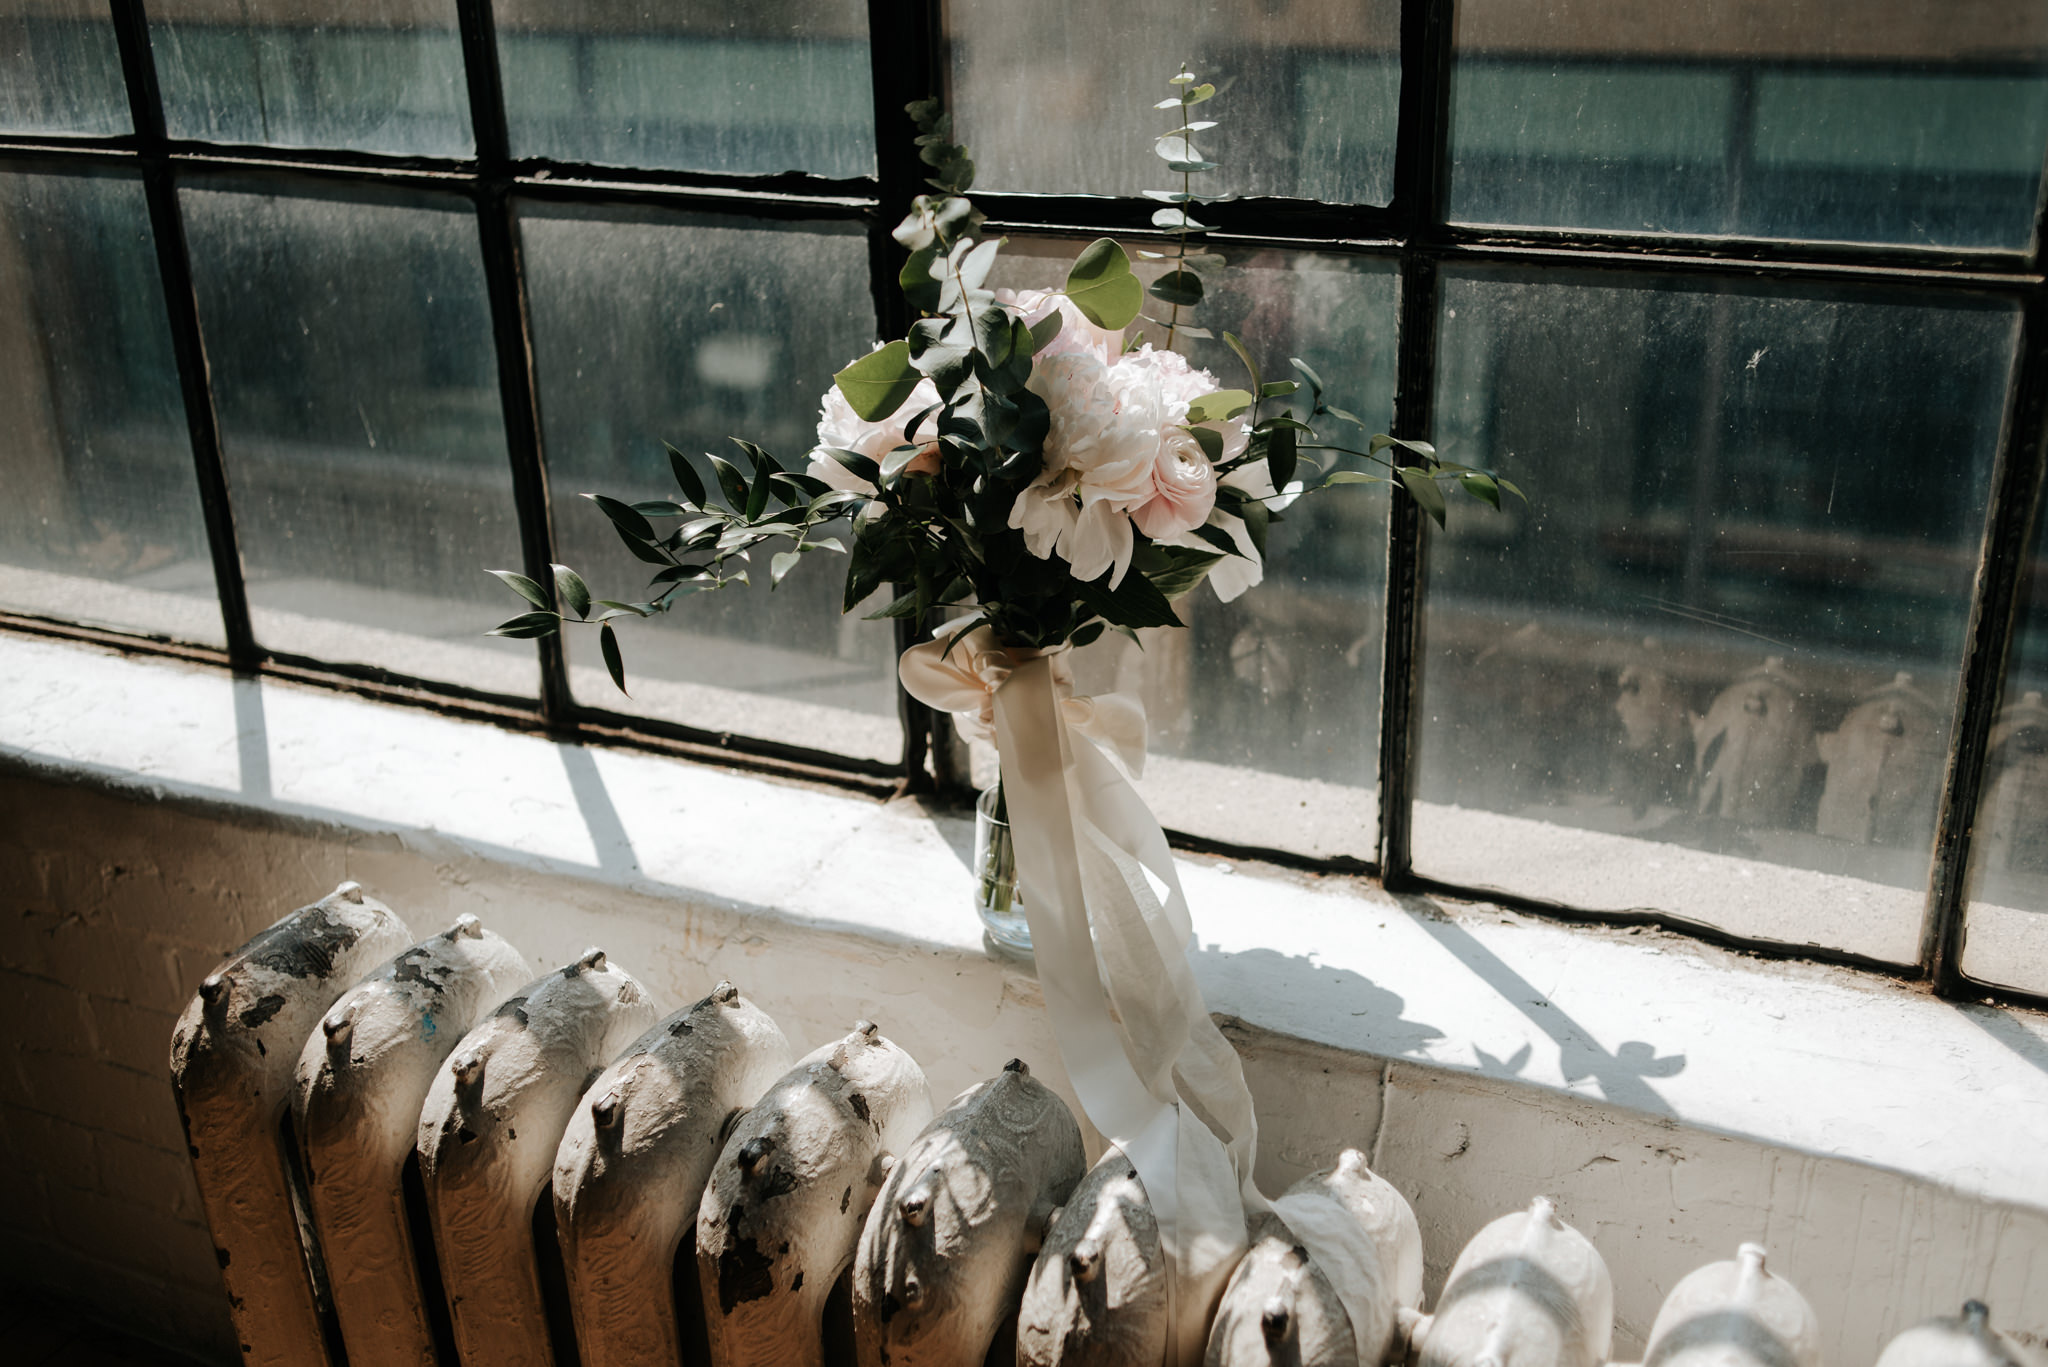 bouquet on window ledge in old loft at sunrise